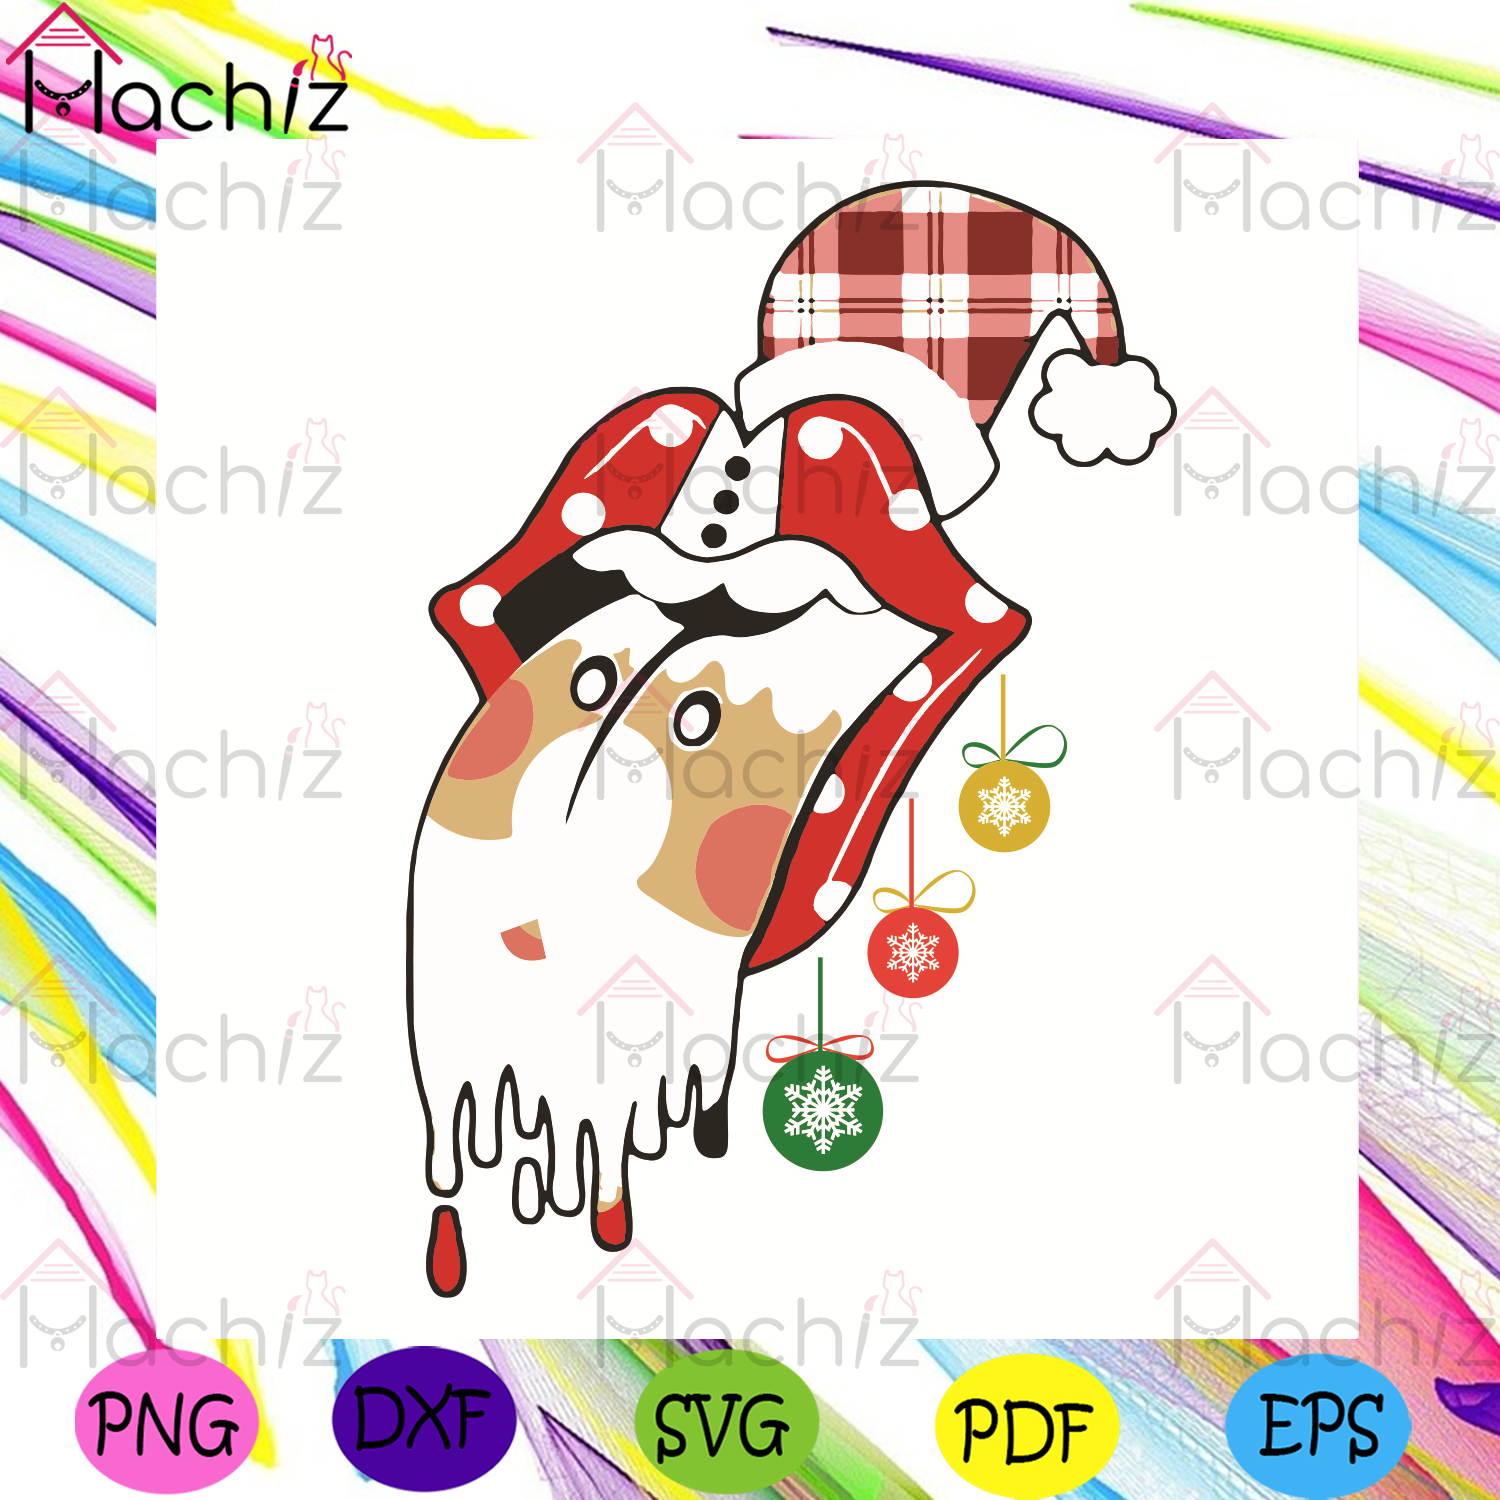 Santa Clause Stones Merry Christmas Svg, Christmas Svg, Santa Claus Svg, Stones Svg, Lips Svg, Christmas Lips Svg, Sexy Lips Svg, Merry Christmas Svg, Christmas Gifts Svg, Santa Hat Svg, Christmas Decoration Svg